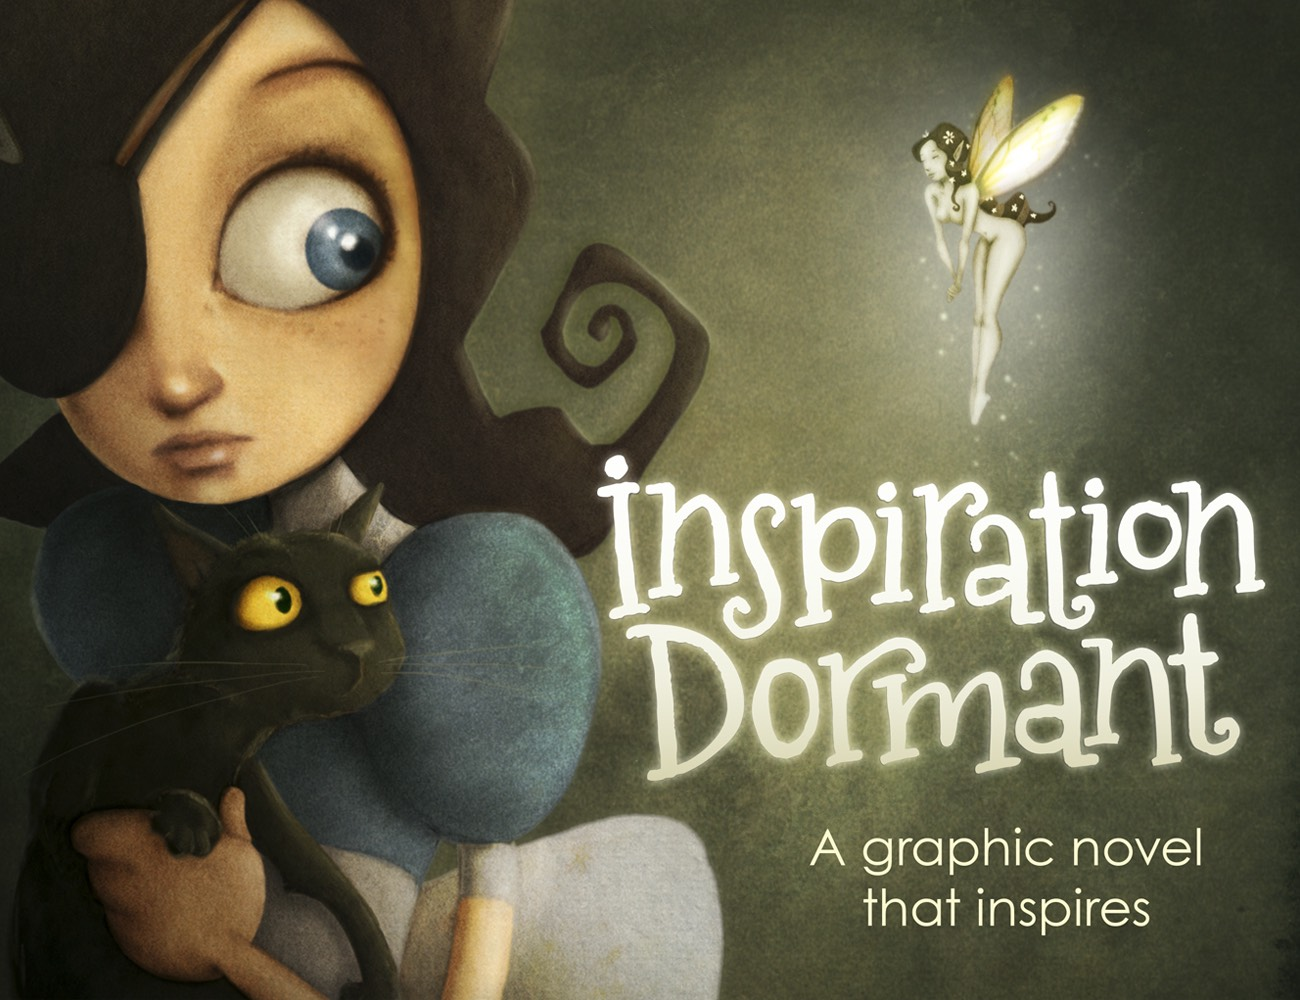 inspiration-dormant-a-graphic-novel-that-inspires-01